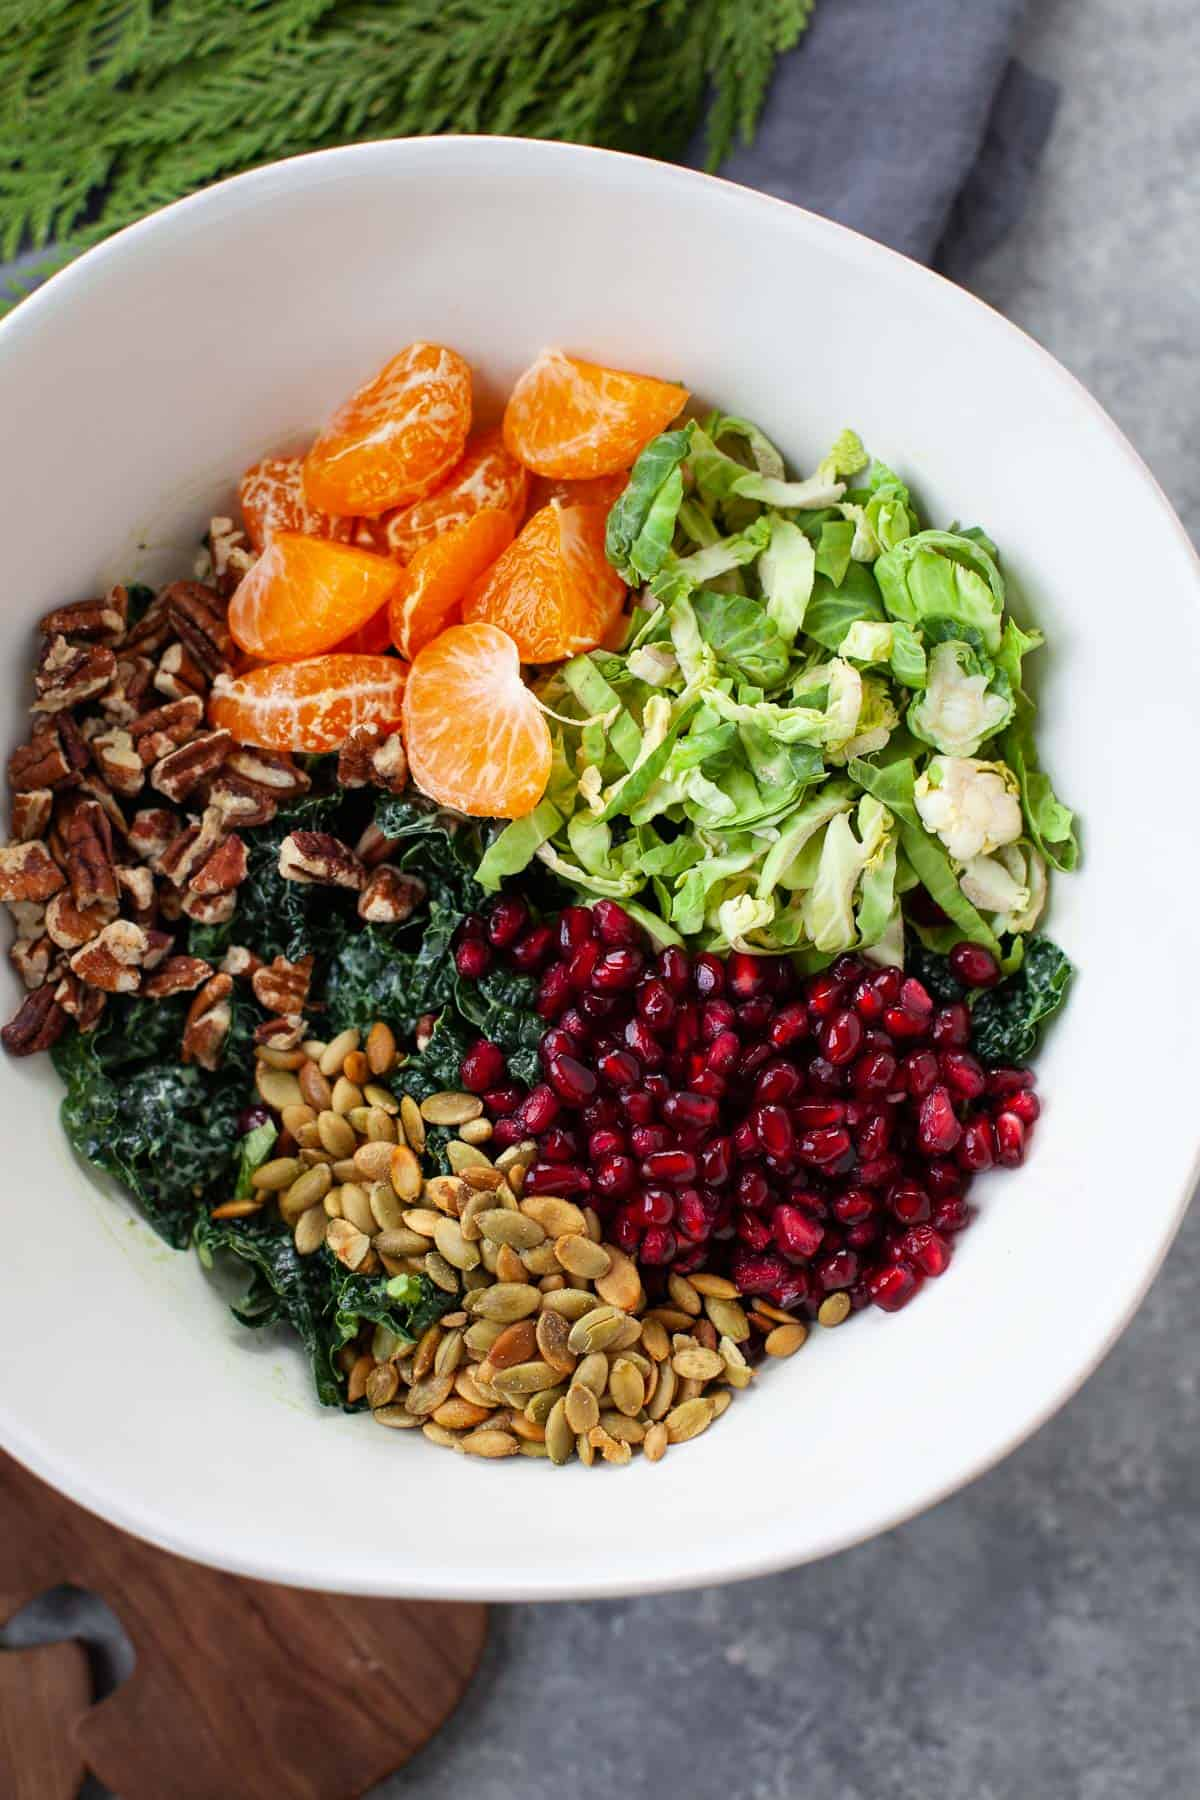 bowl filled with kale, shredded brussels sprouts, pomegranate, walnuts, and satsuma